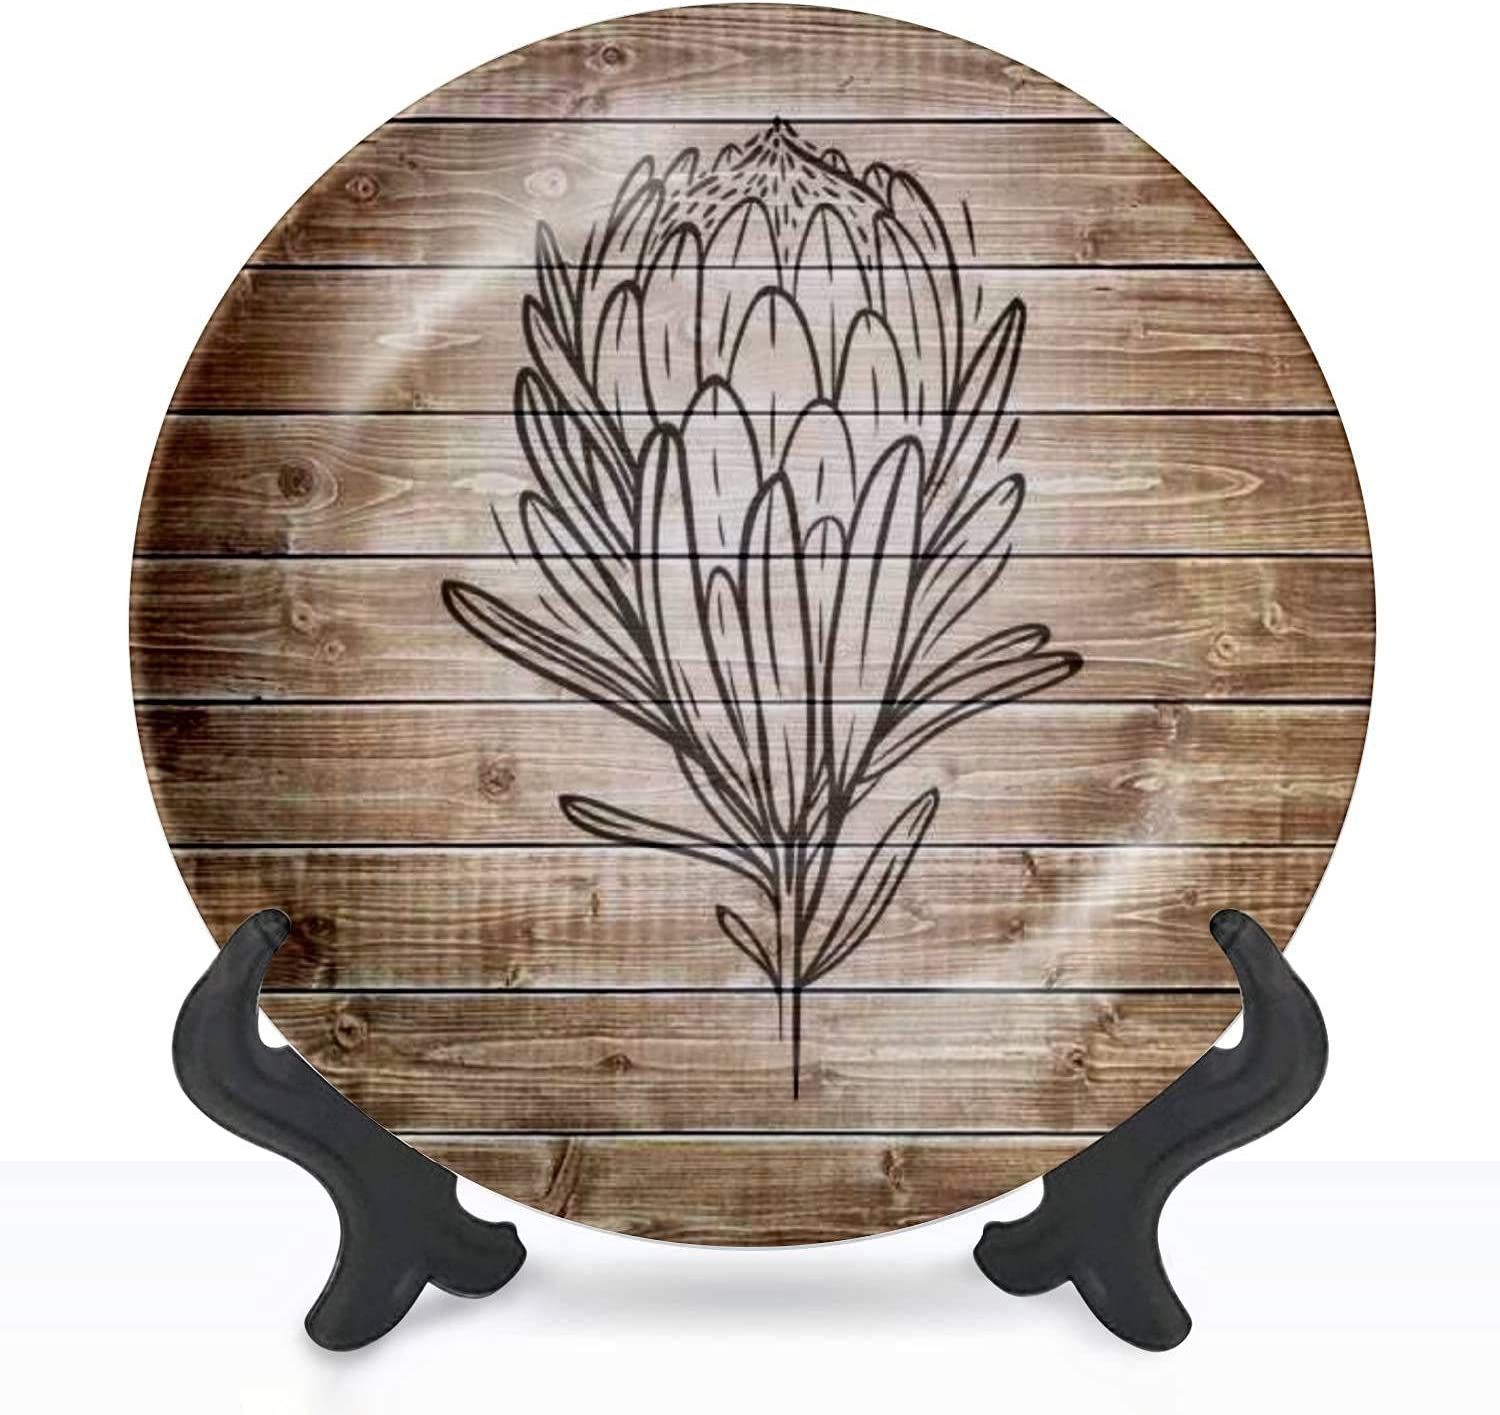 Trust Ceramic Max 82% OFF Hanging Decorative Plate Protea white on isolated flower